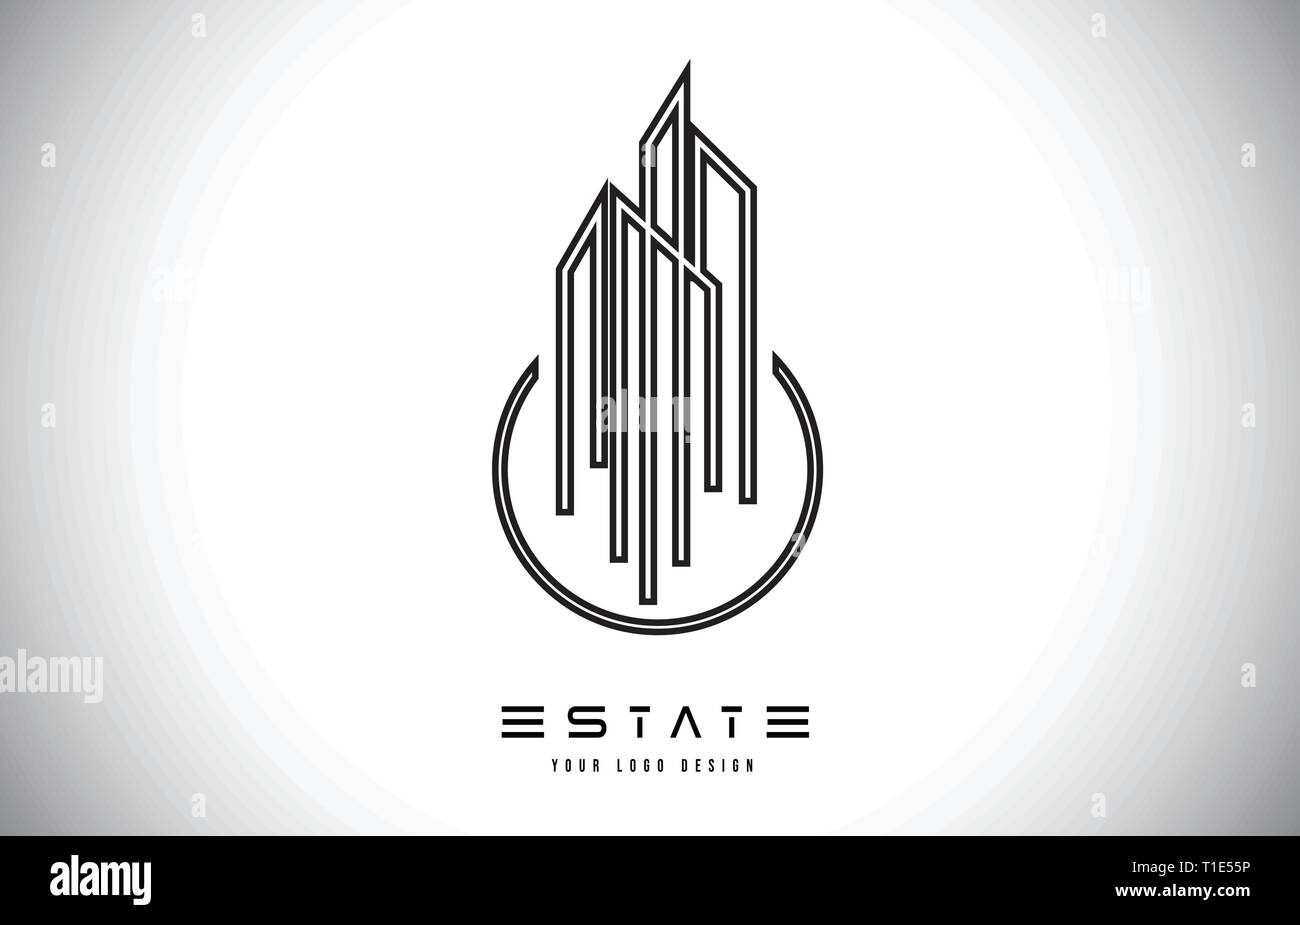 Real Estate Modern Monogram Logo Design Real Estate Lines Abstract Buildings Icon Vector Illustration Stock Vector Image Art Alamy